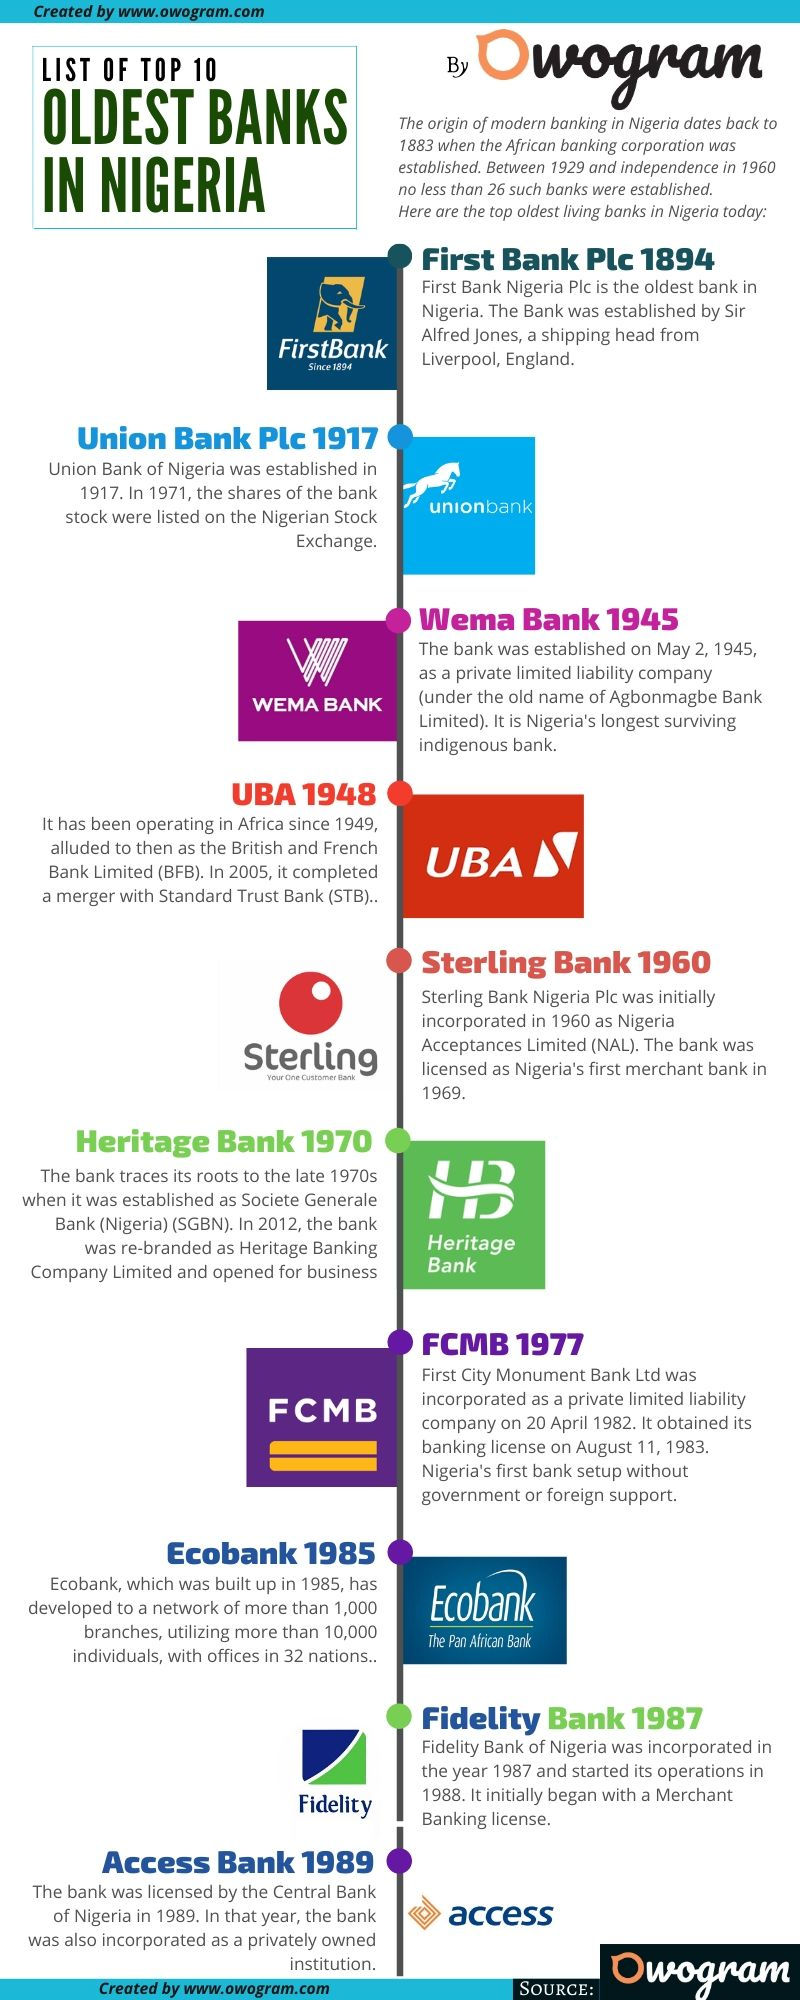 Infographic on the oldest banks in Nigeria